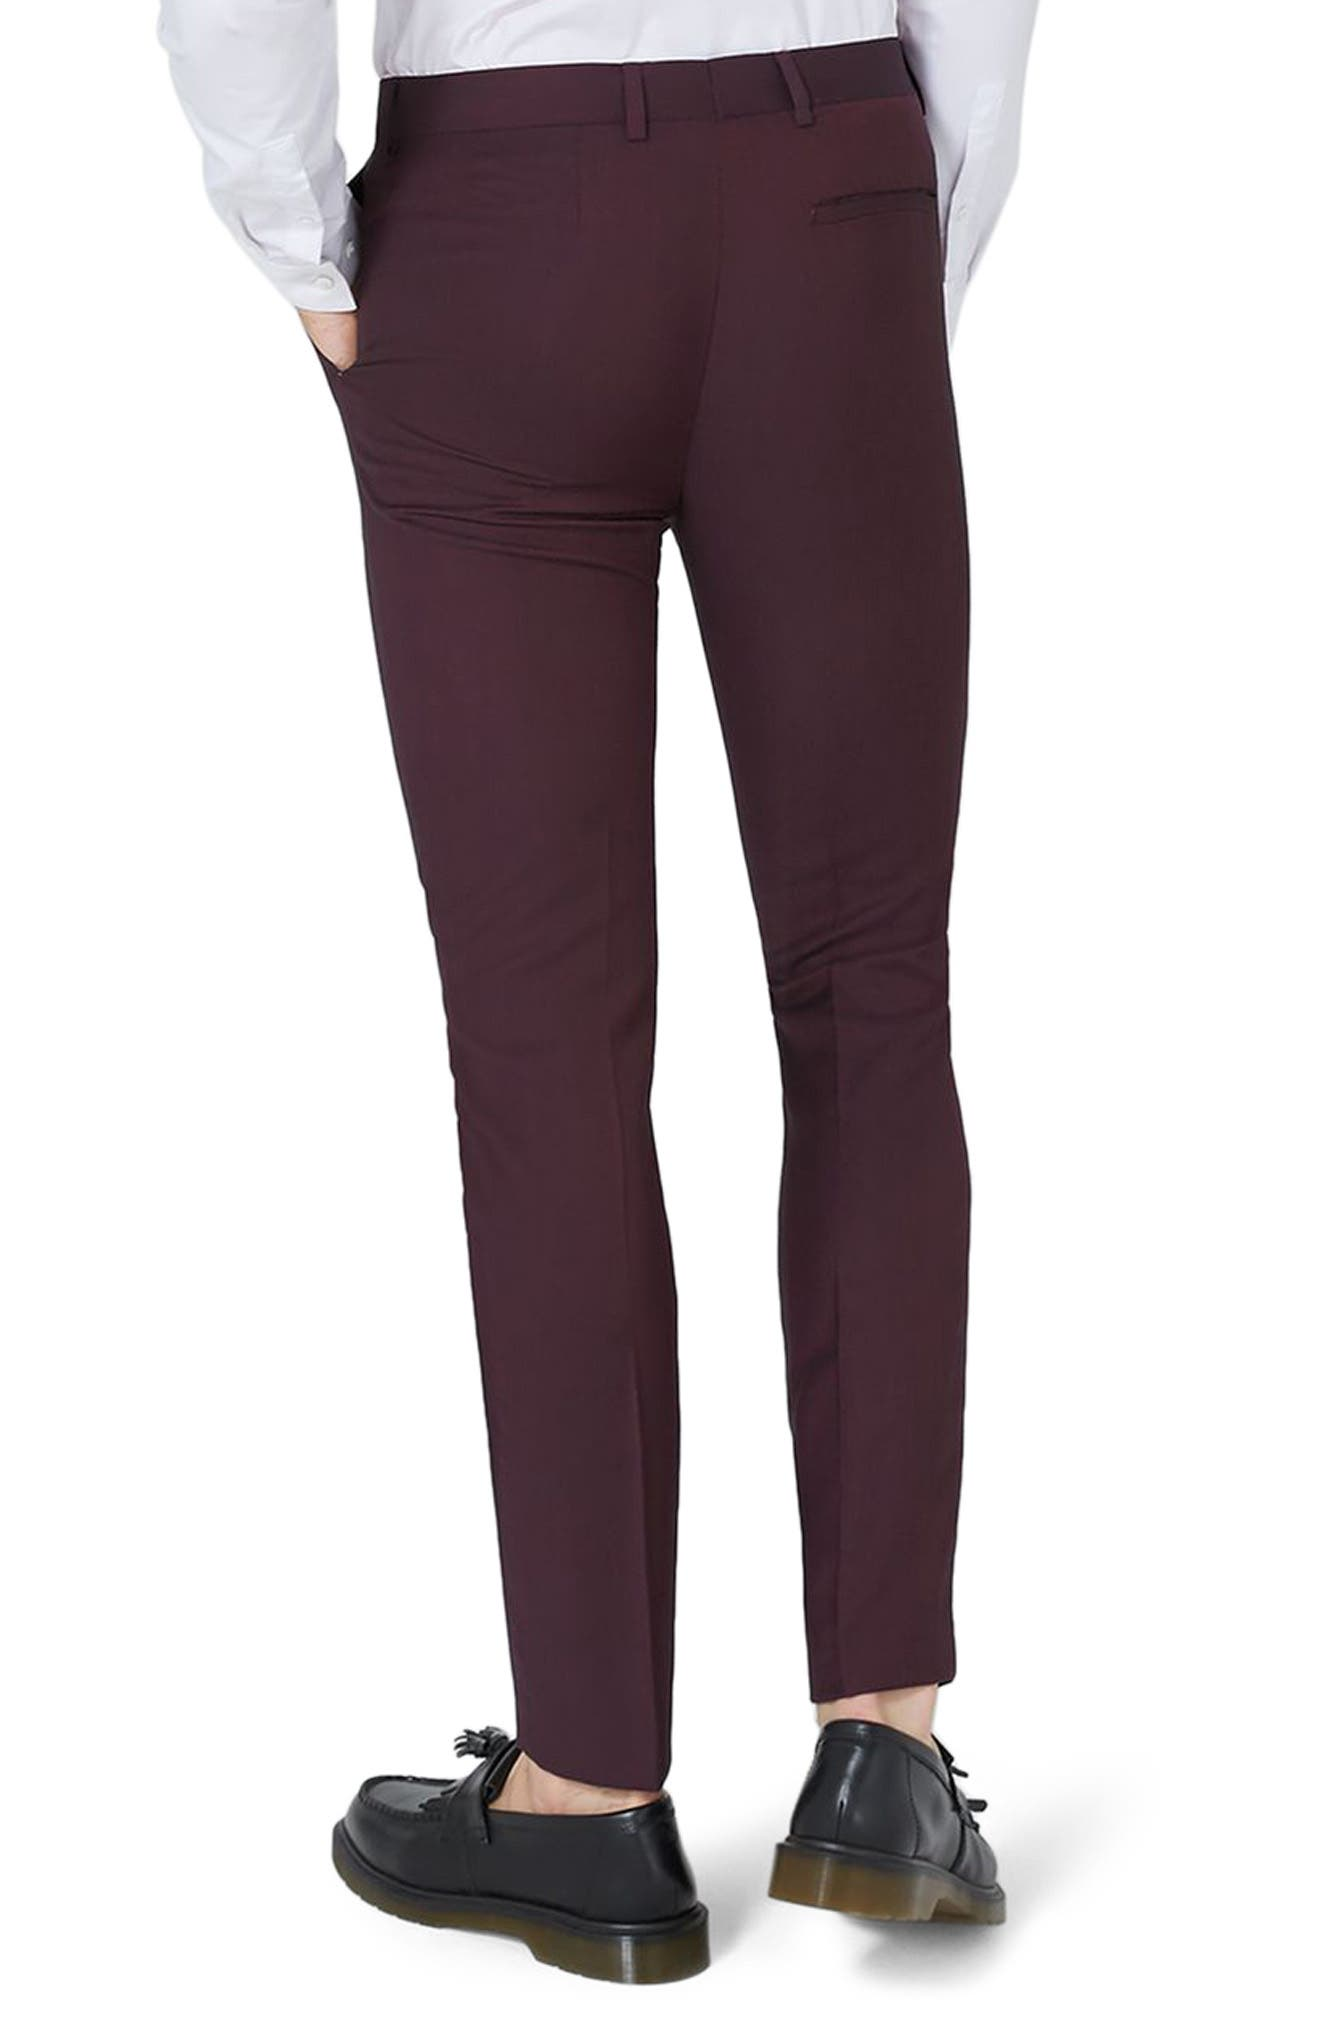 Skinny Fit Plum Suit Trousers,                             Alternate thumbnail 3, color,                             Plum